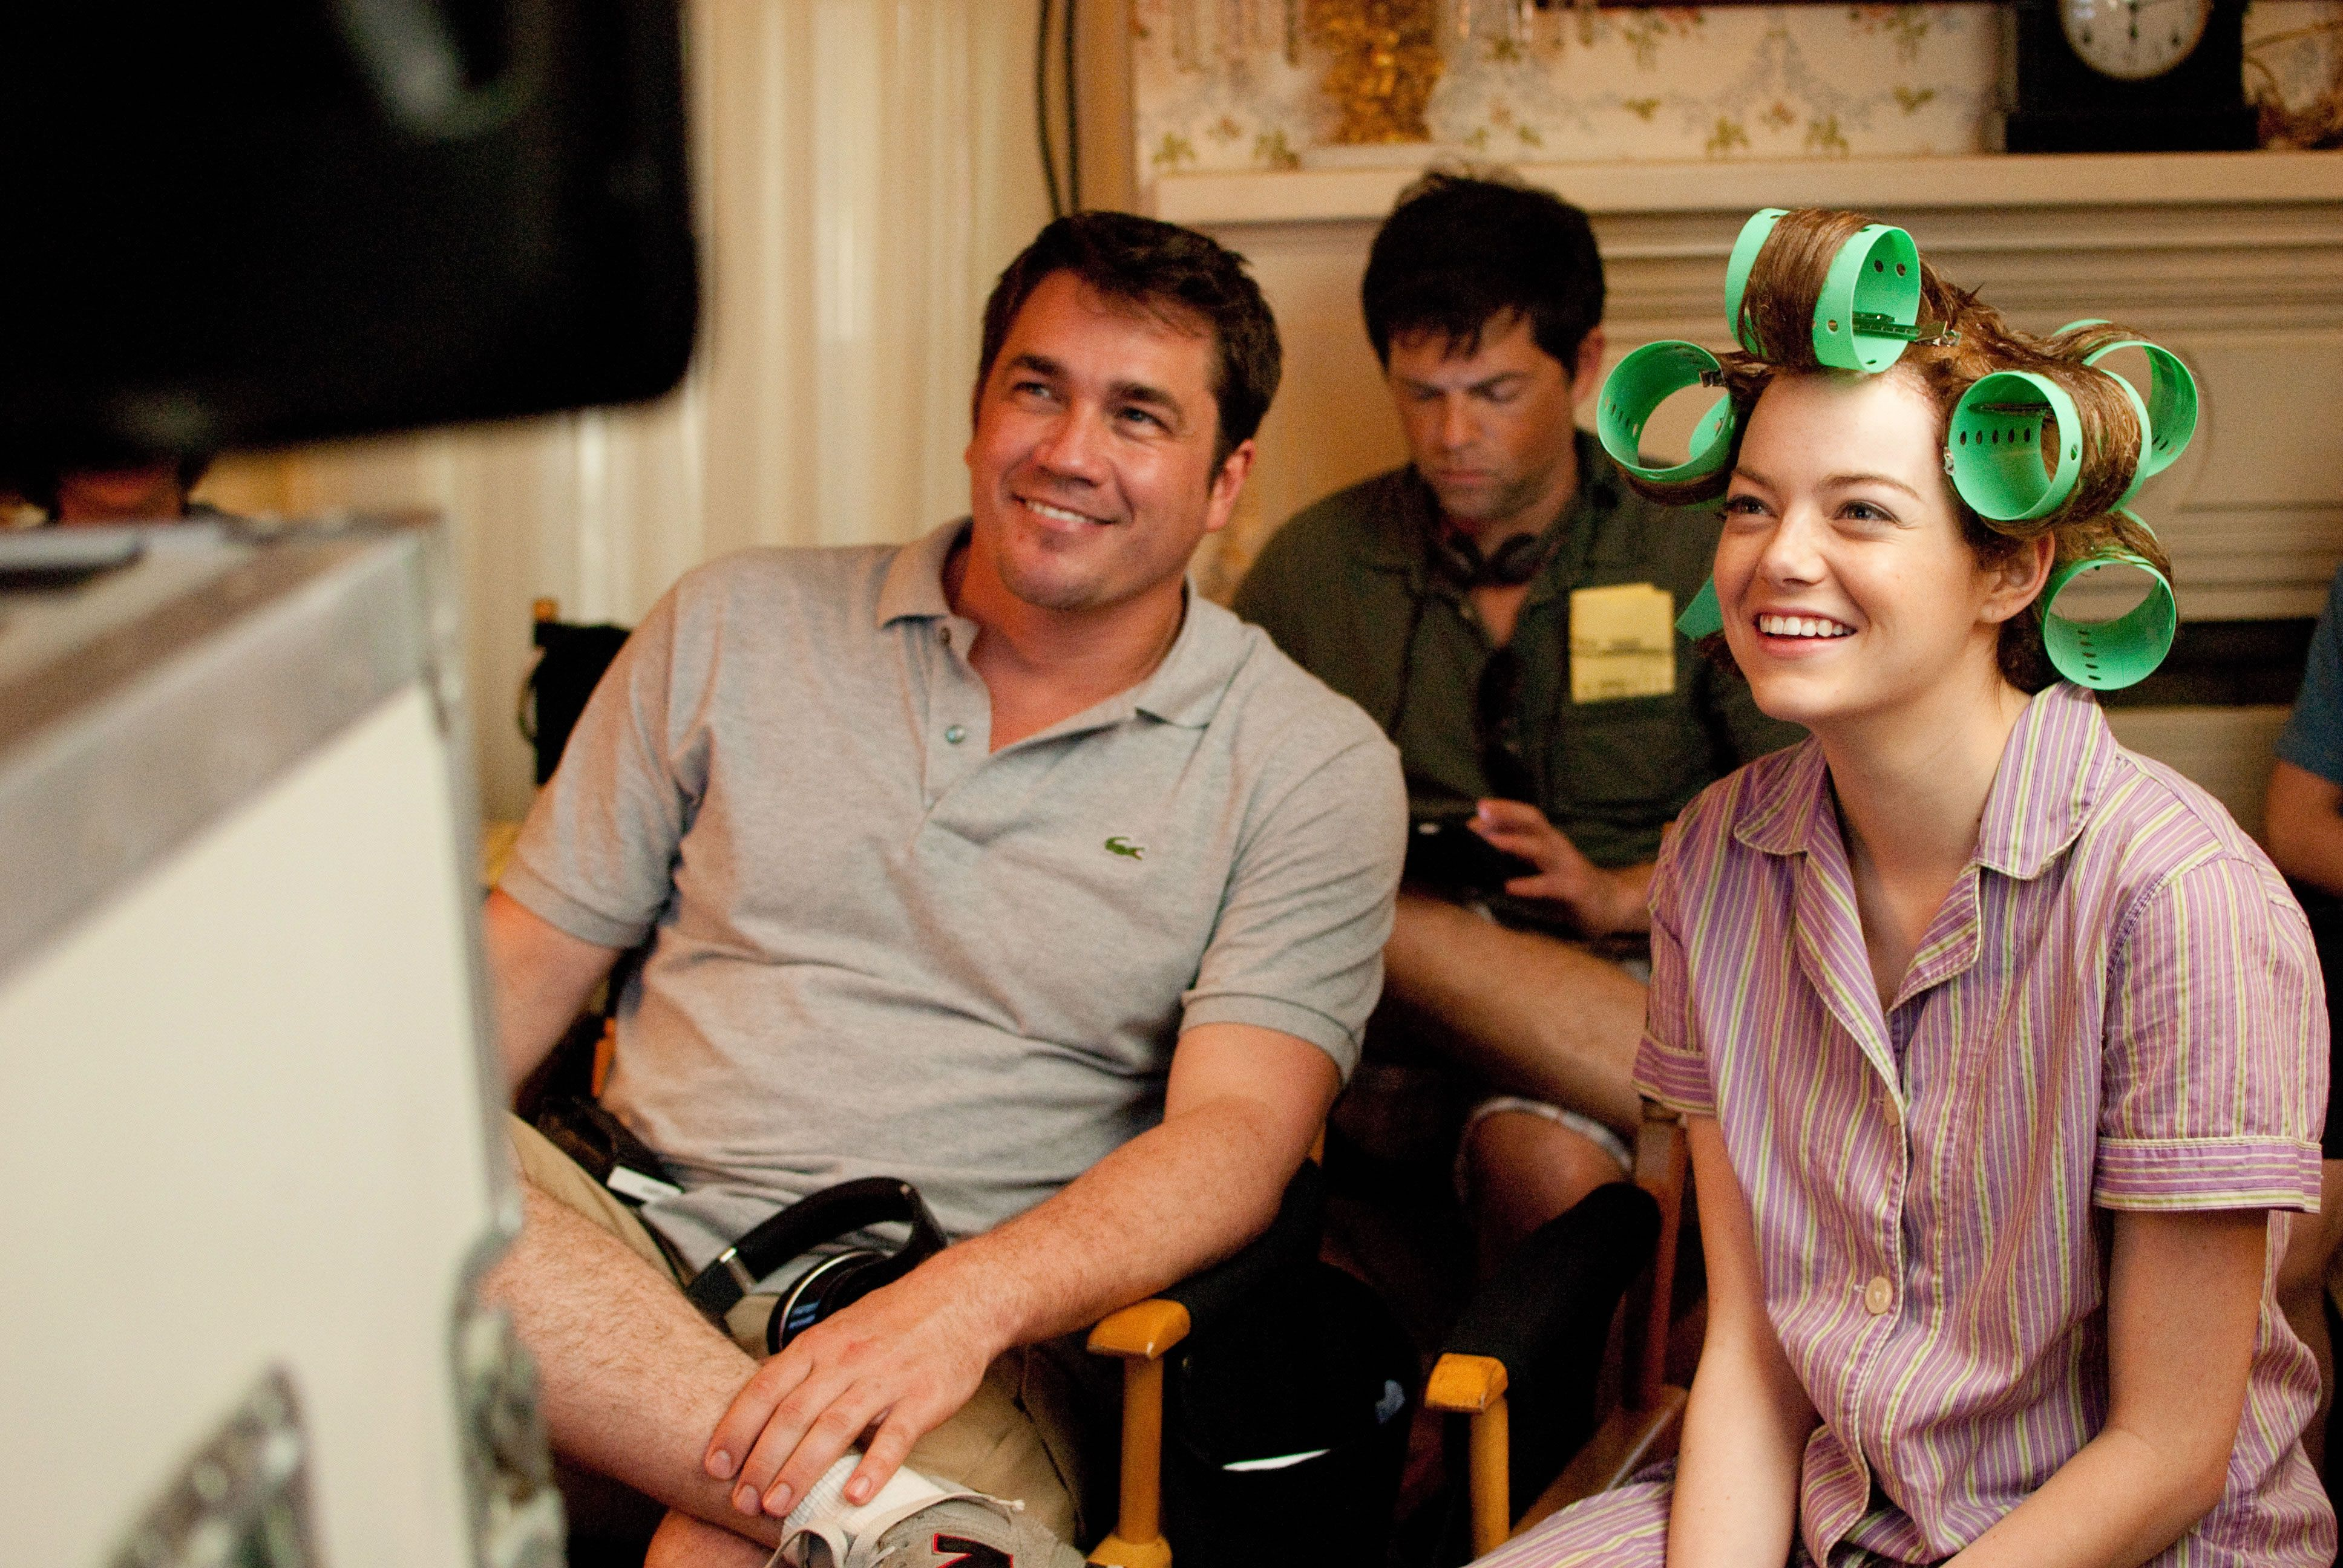 the help movie cast Find industry contacts & talent representation access in-development titles not available on imdb get the latest news from leading industry trades.